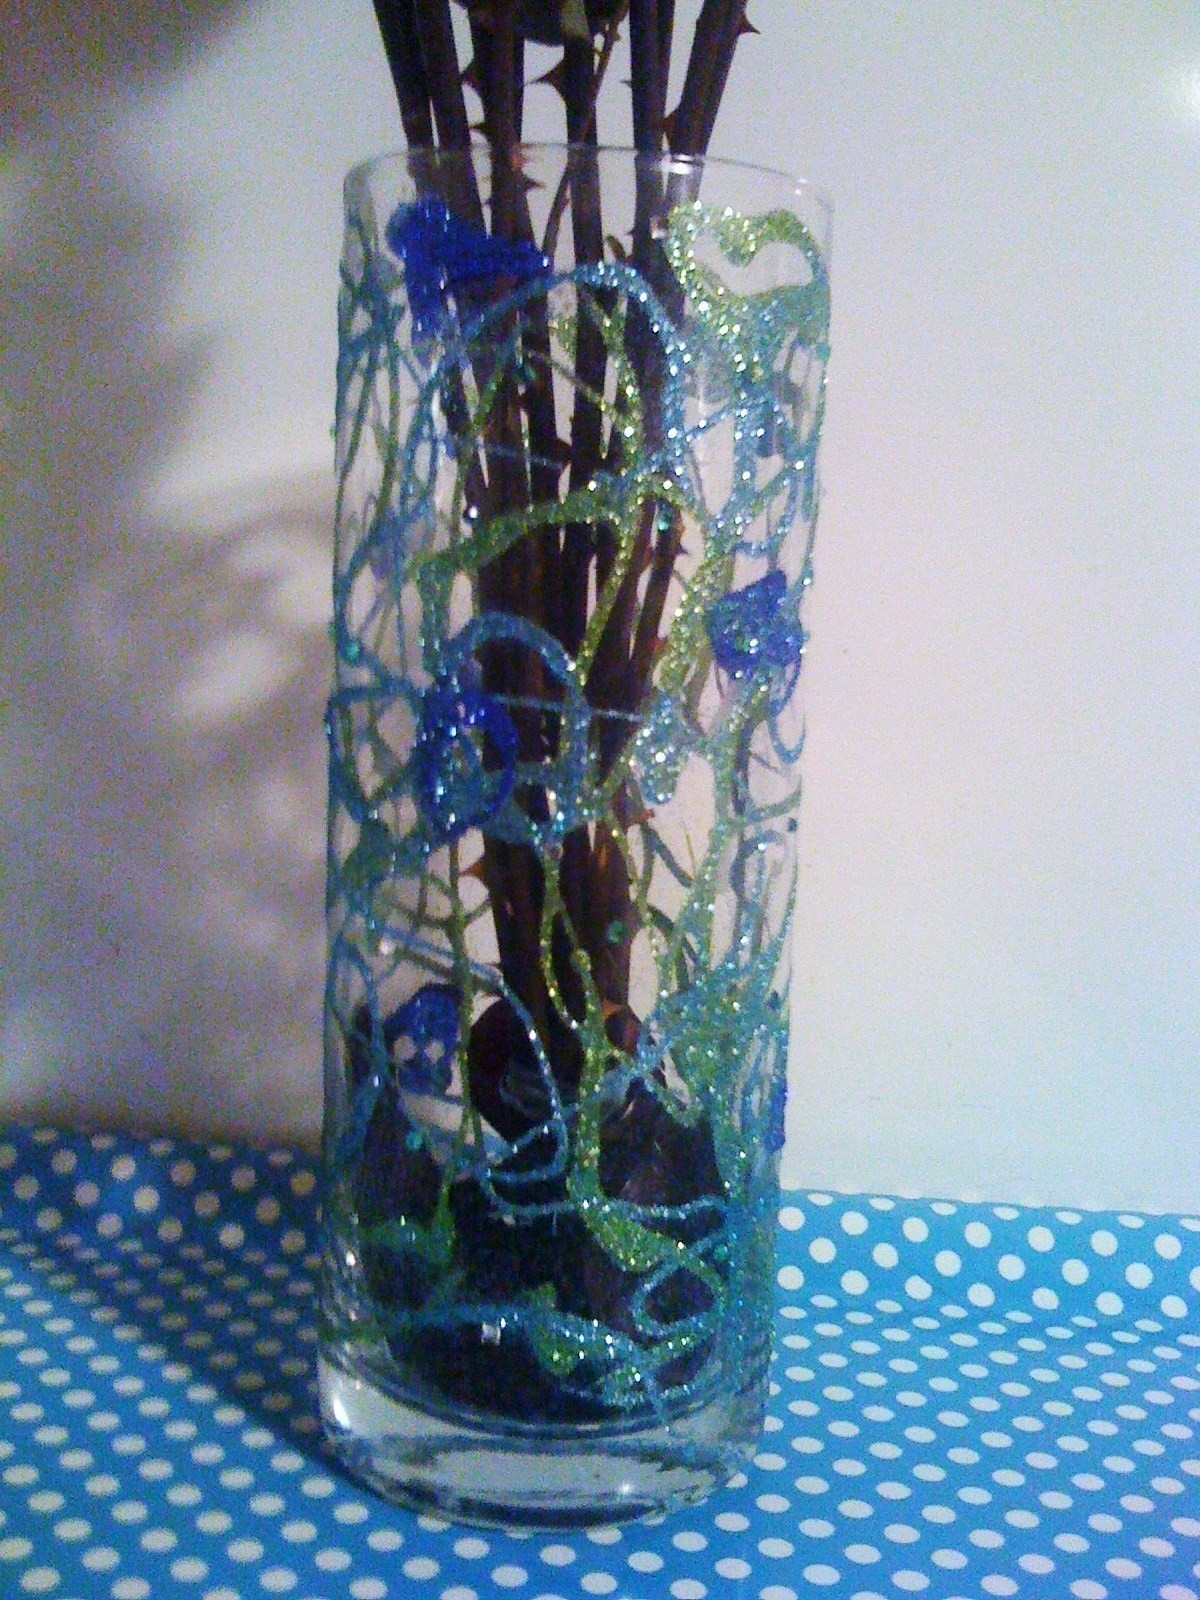 Diy Glitter Vase  How To Make A Vase  Glasswork and